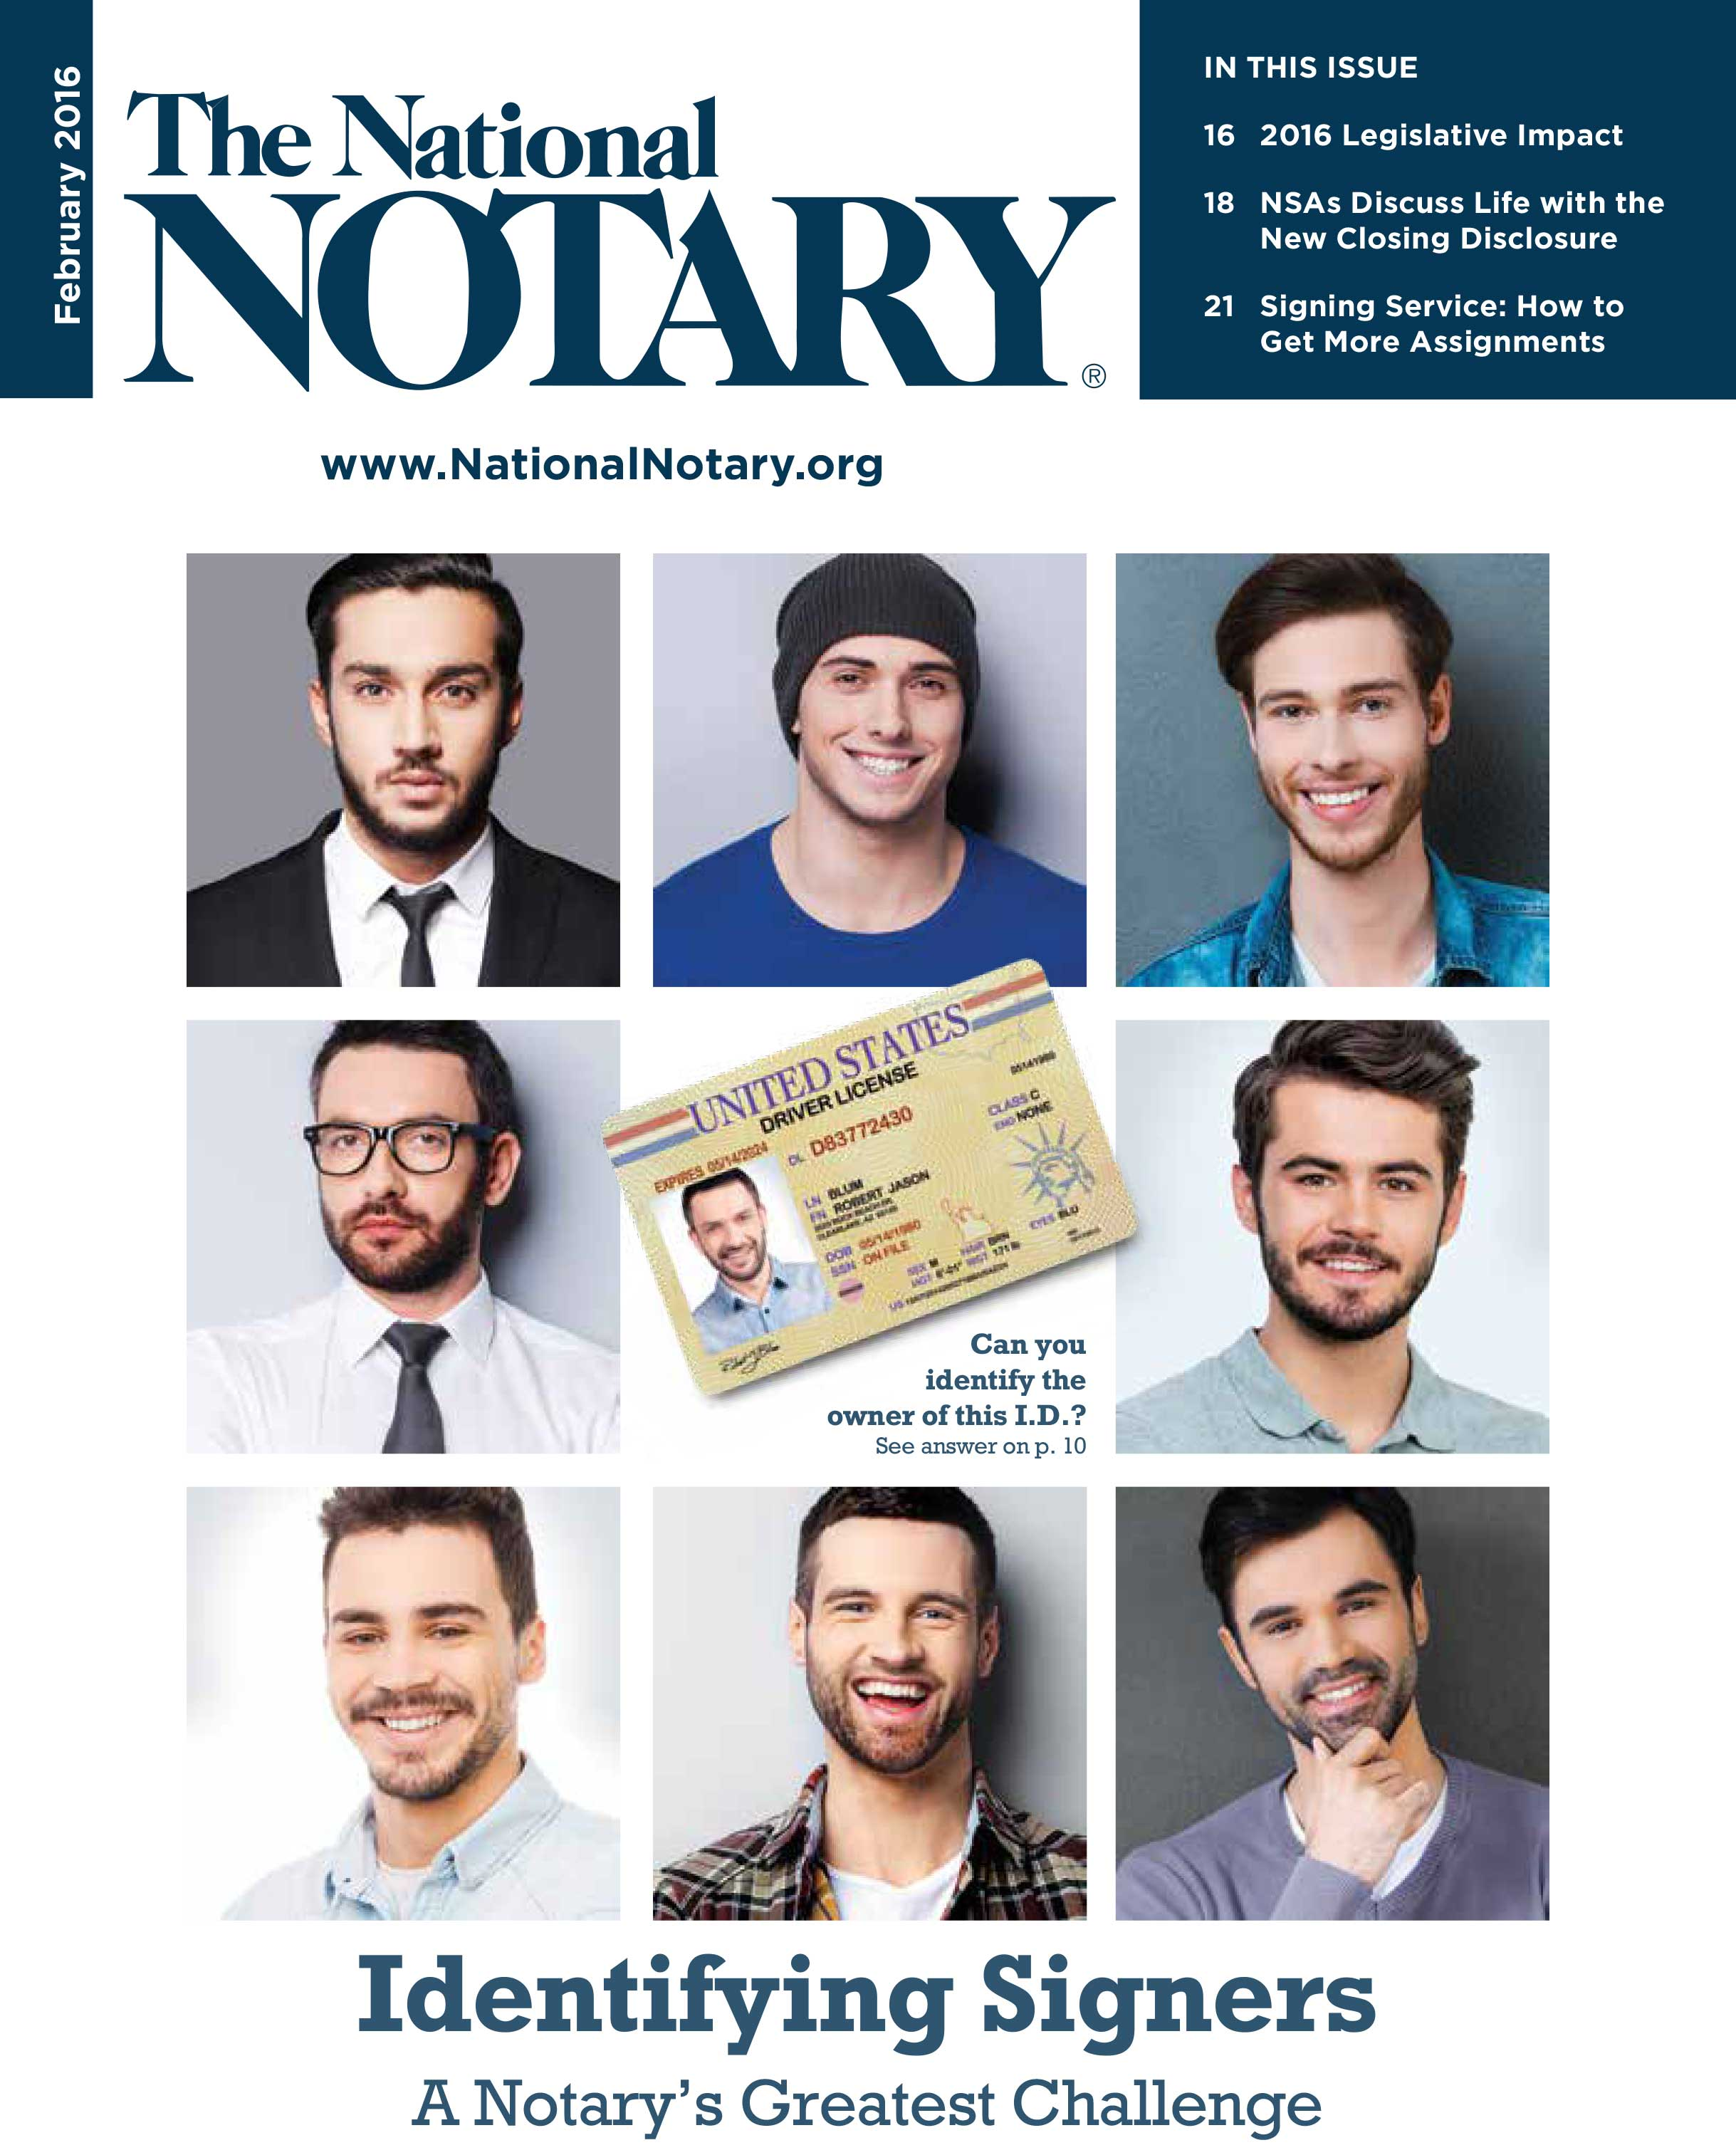 The National Notary - February 2016